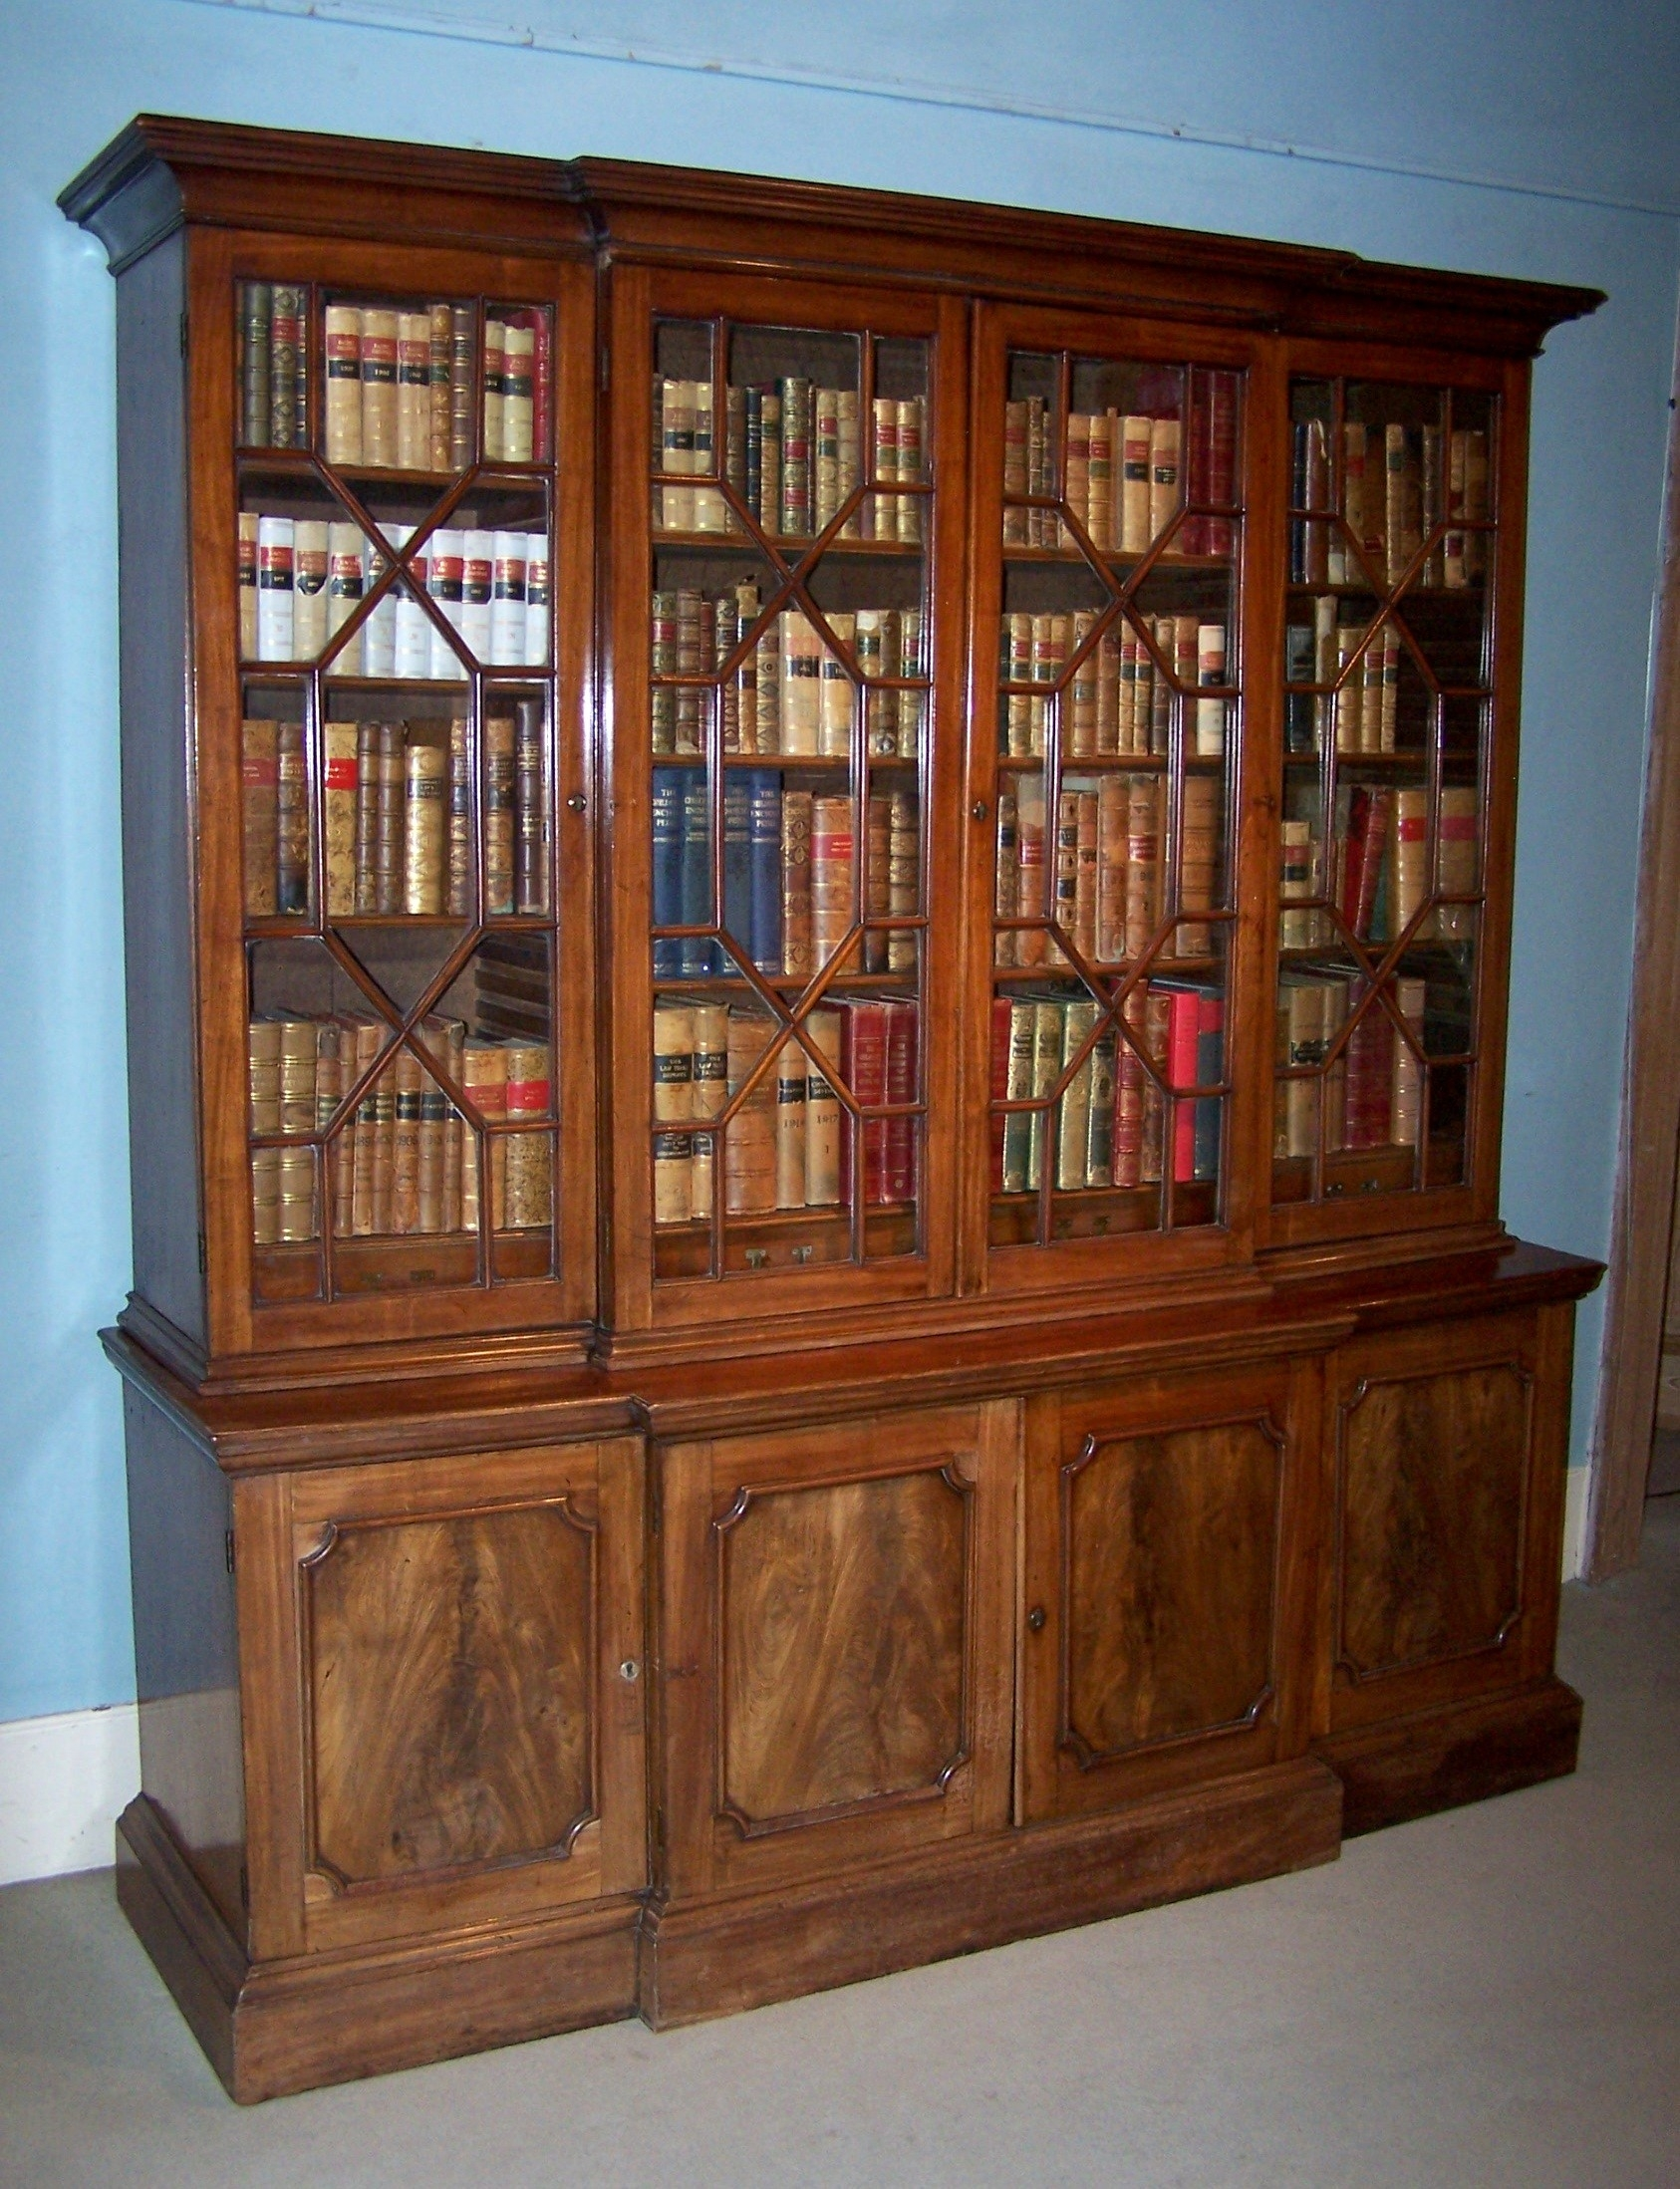 Antique Small Breakfront Bookcase 1775 England From Summers Throughout Break Front Bookcase (#2 of 15)